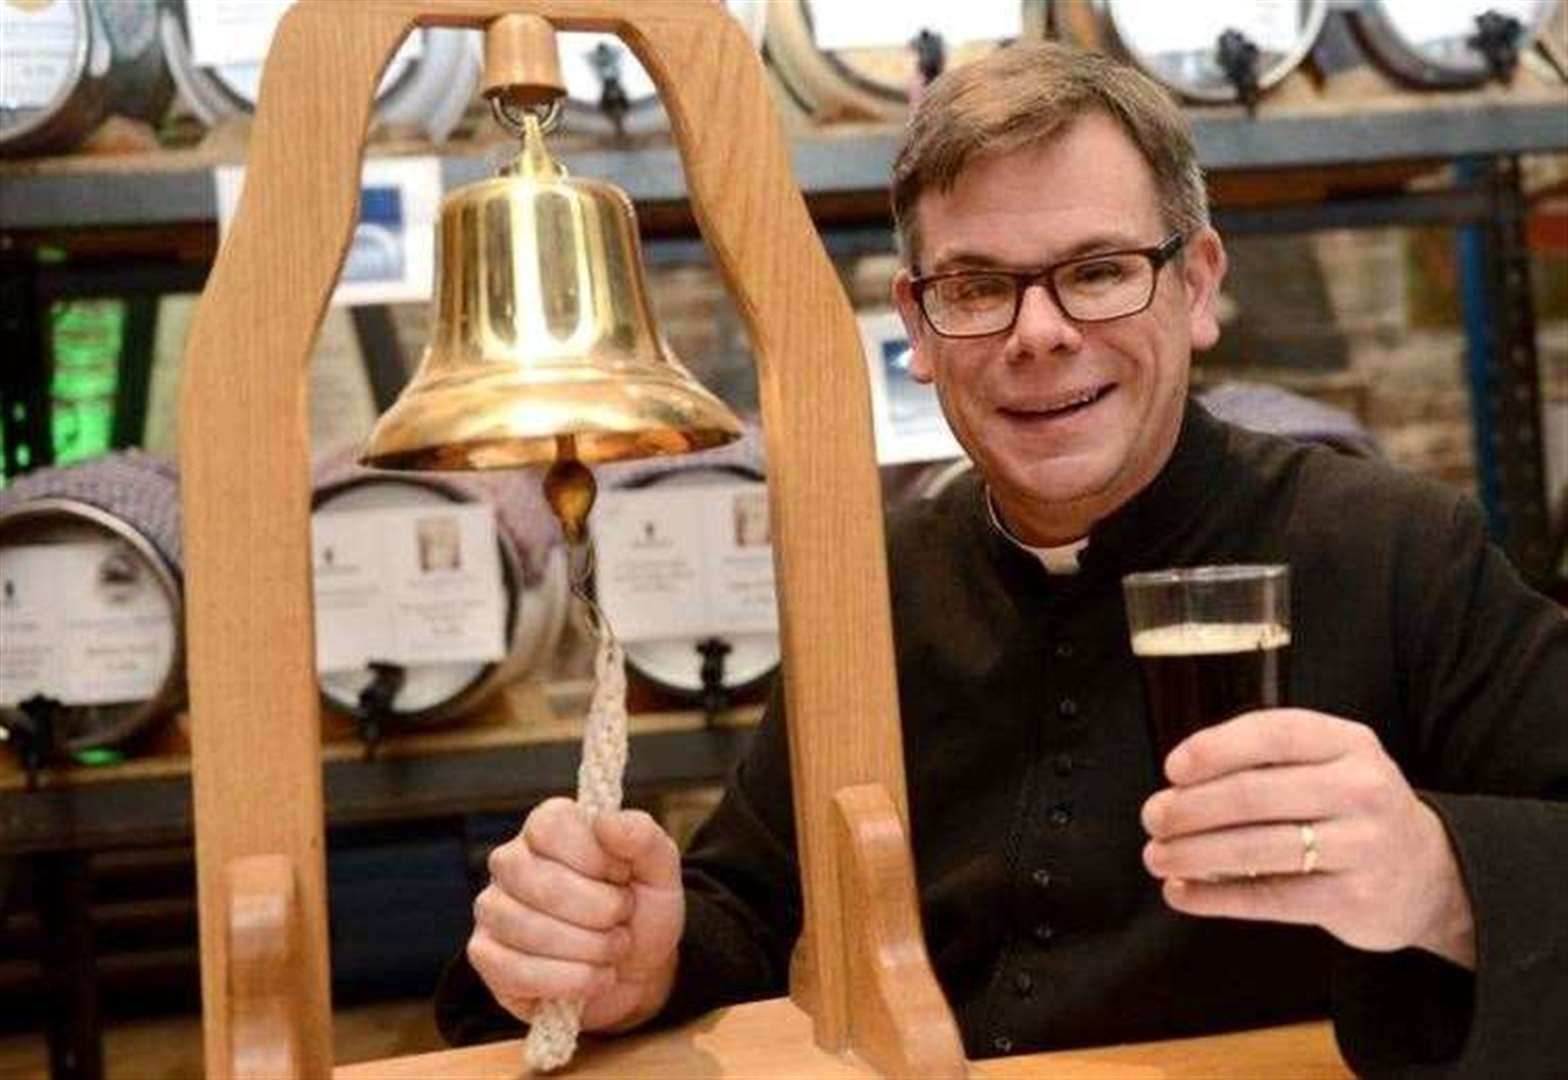 South Kesteven and Rutland set for their 'biggest' beer festival in historic St Wulfram's Church